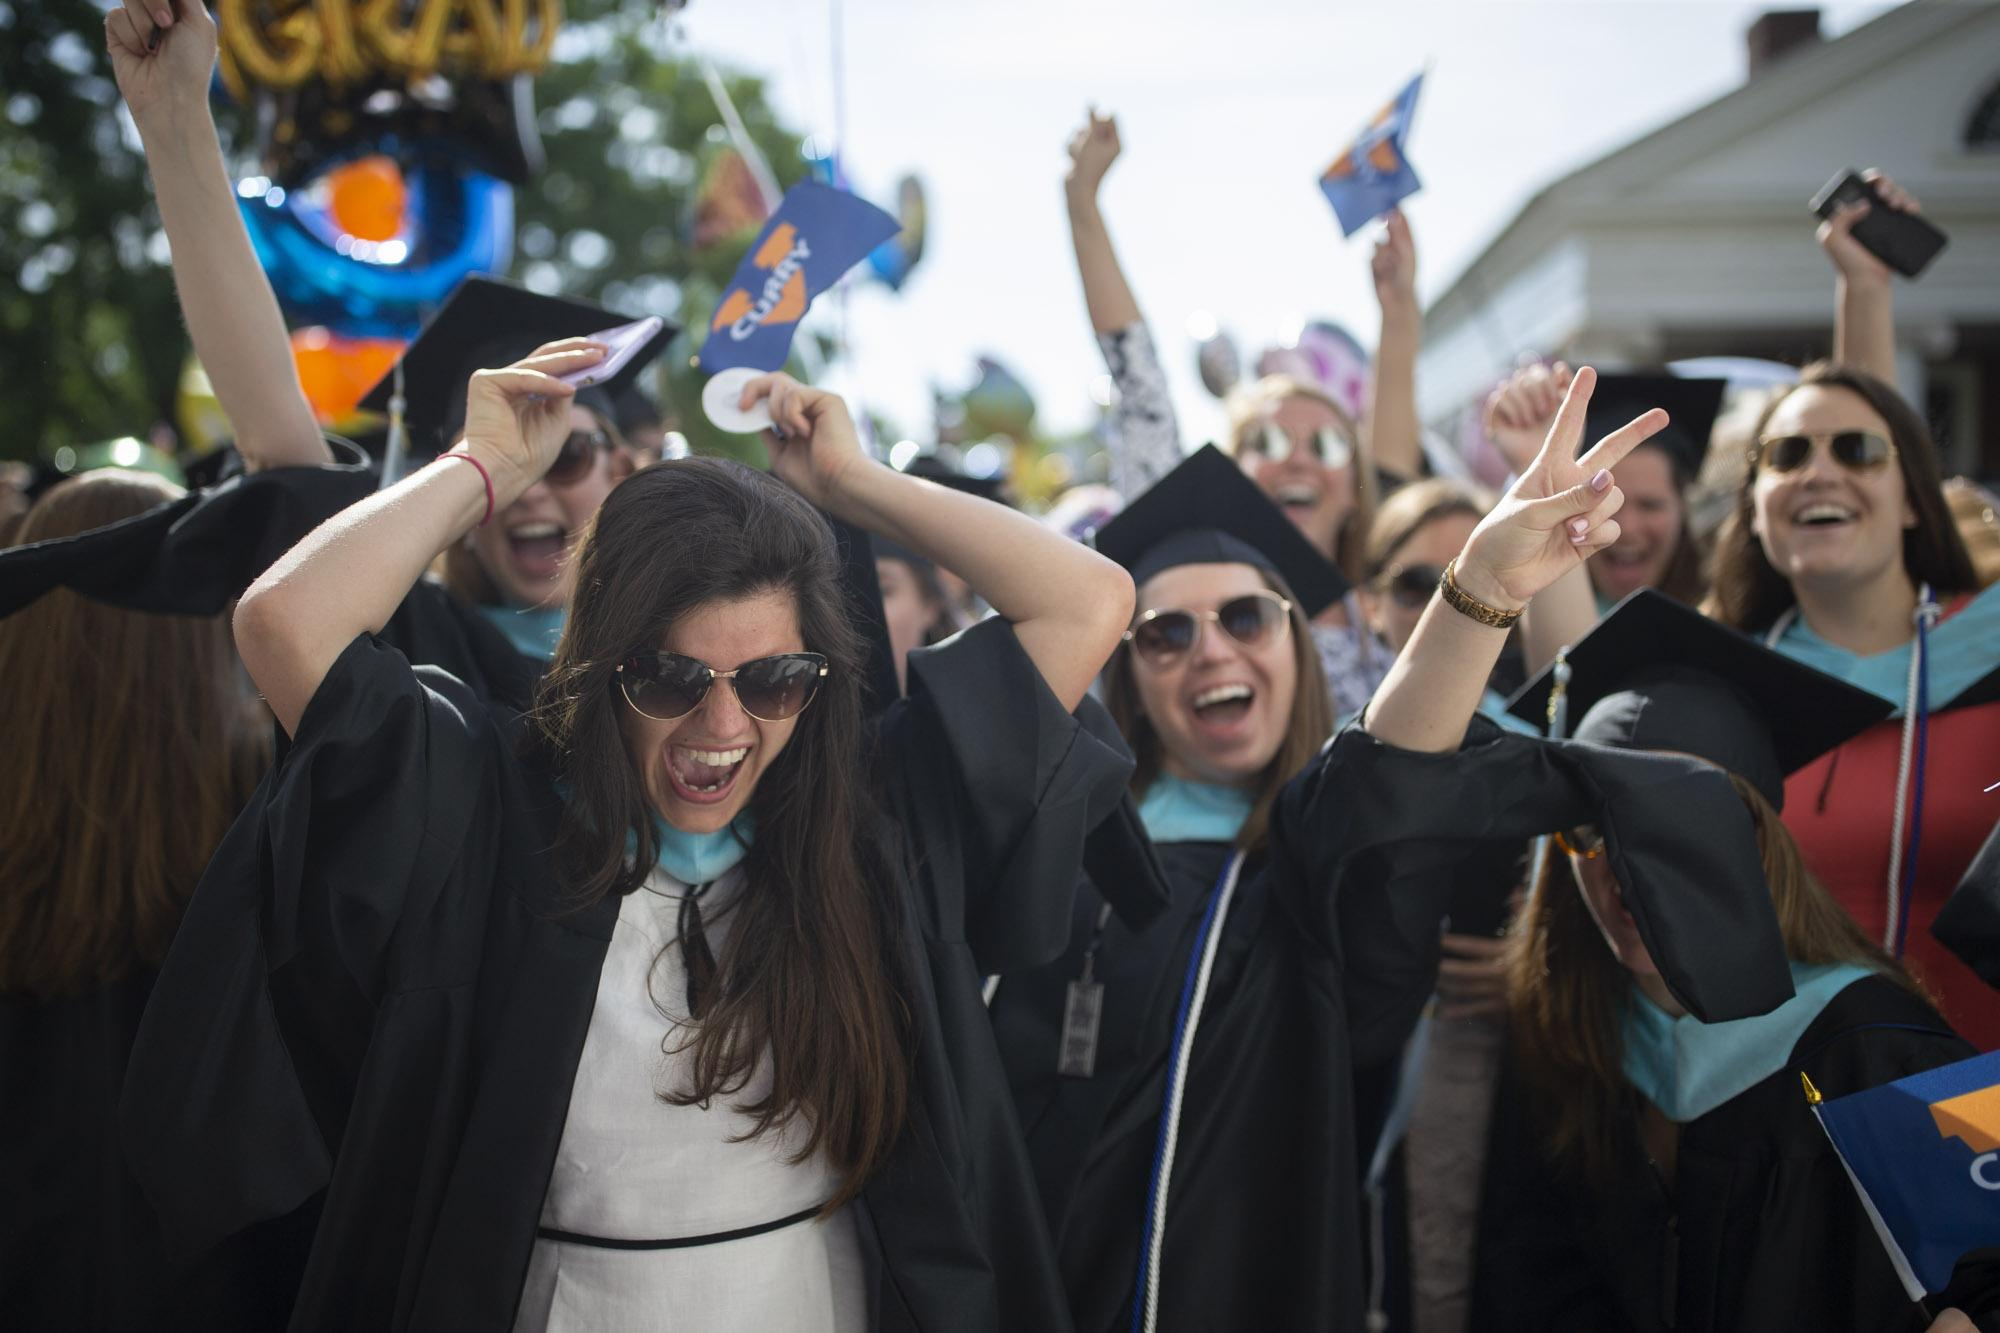 Graduates from 10 University of Virginia schools and the Data Science Institute celebrated Sunday in the second of two Final Exercises ceremonies. (Photos by Sanjay Suchak, Dan Addison and Ézé Amos)